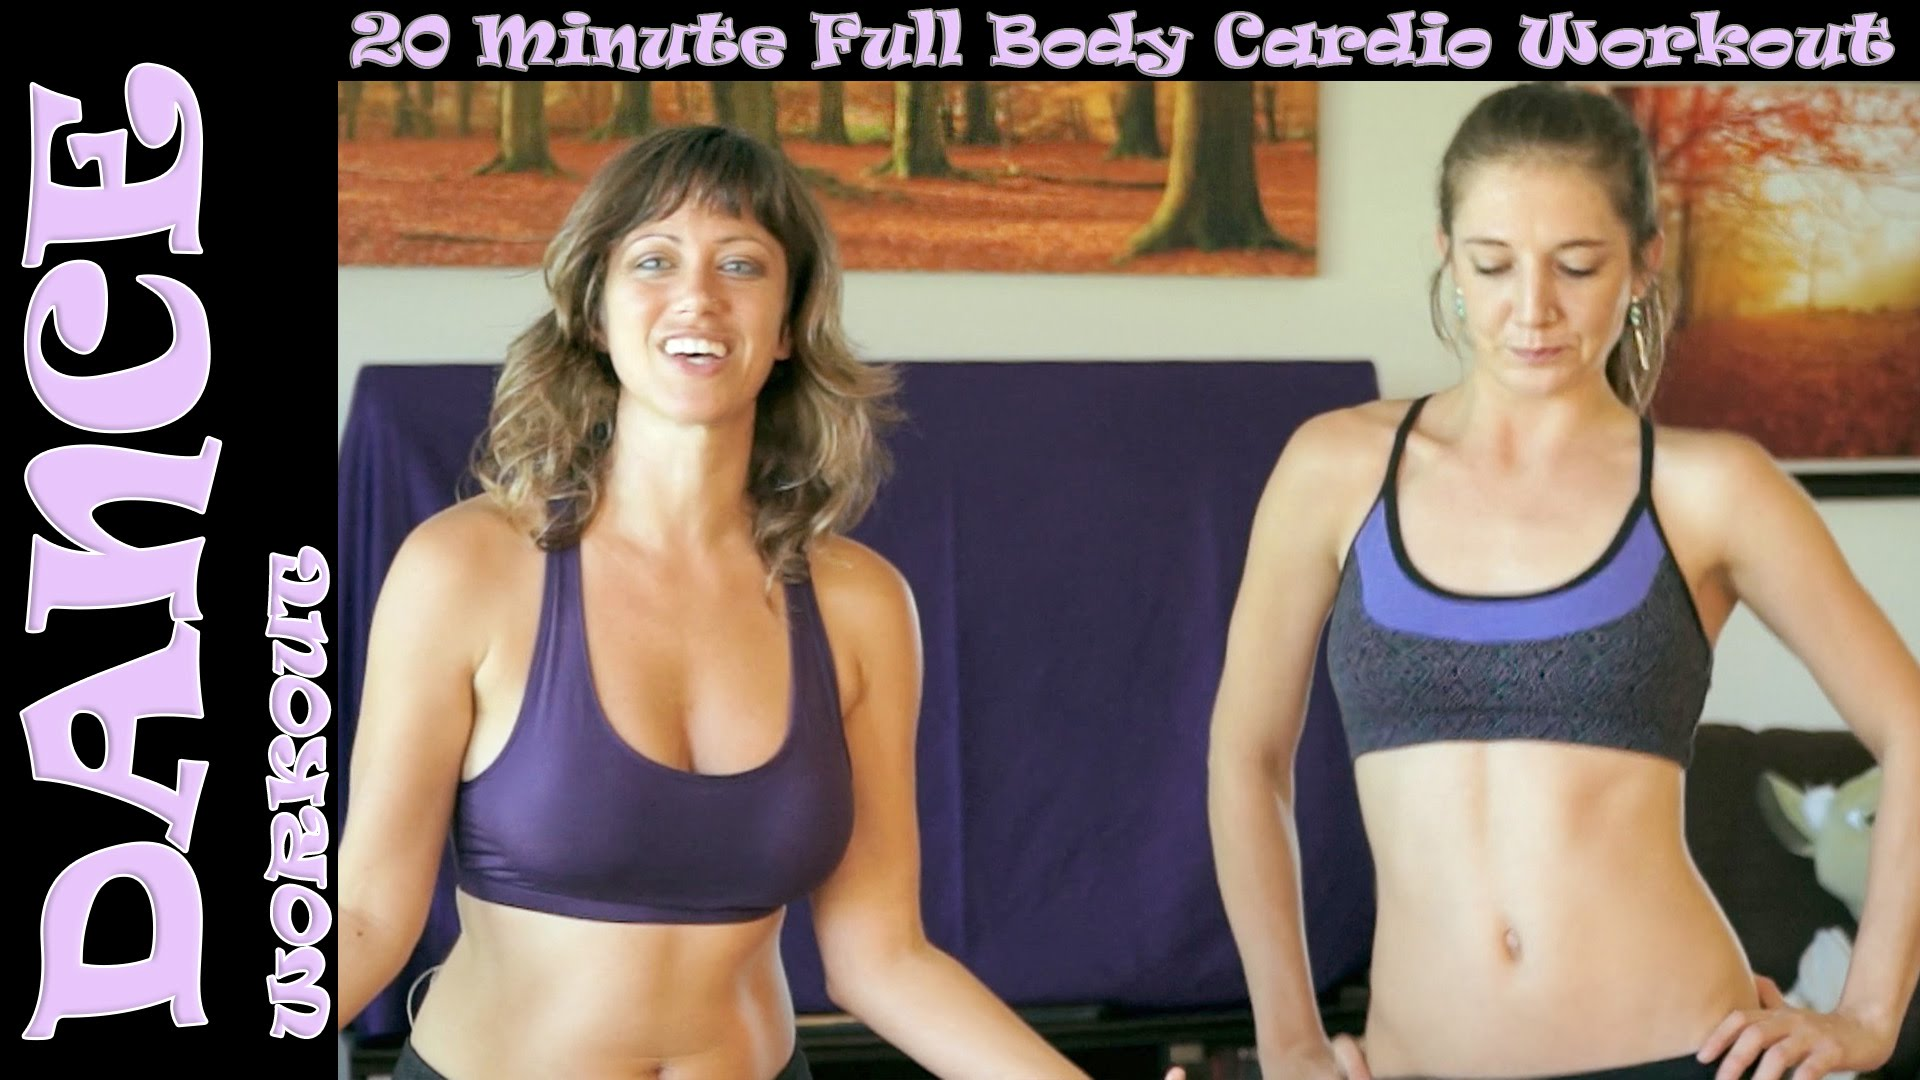 Fun Dance Exercise Workout Fat Burning 2, Legs, Thighs, Butt at Home Beginners Aerobic Cardio